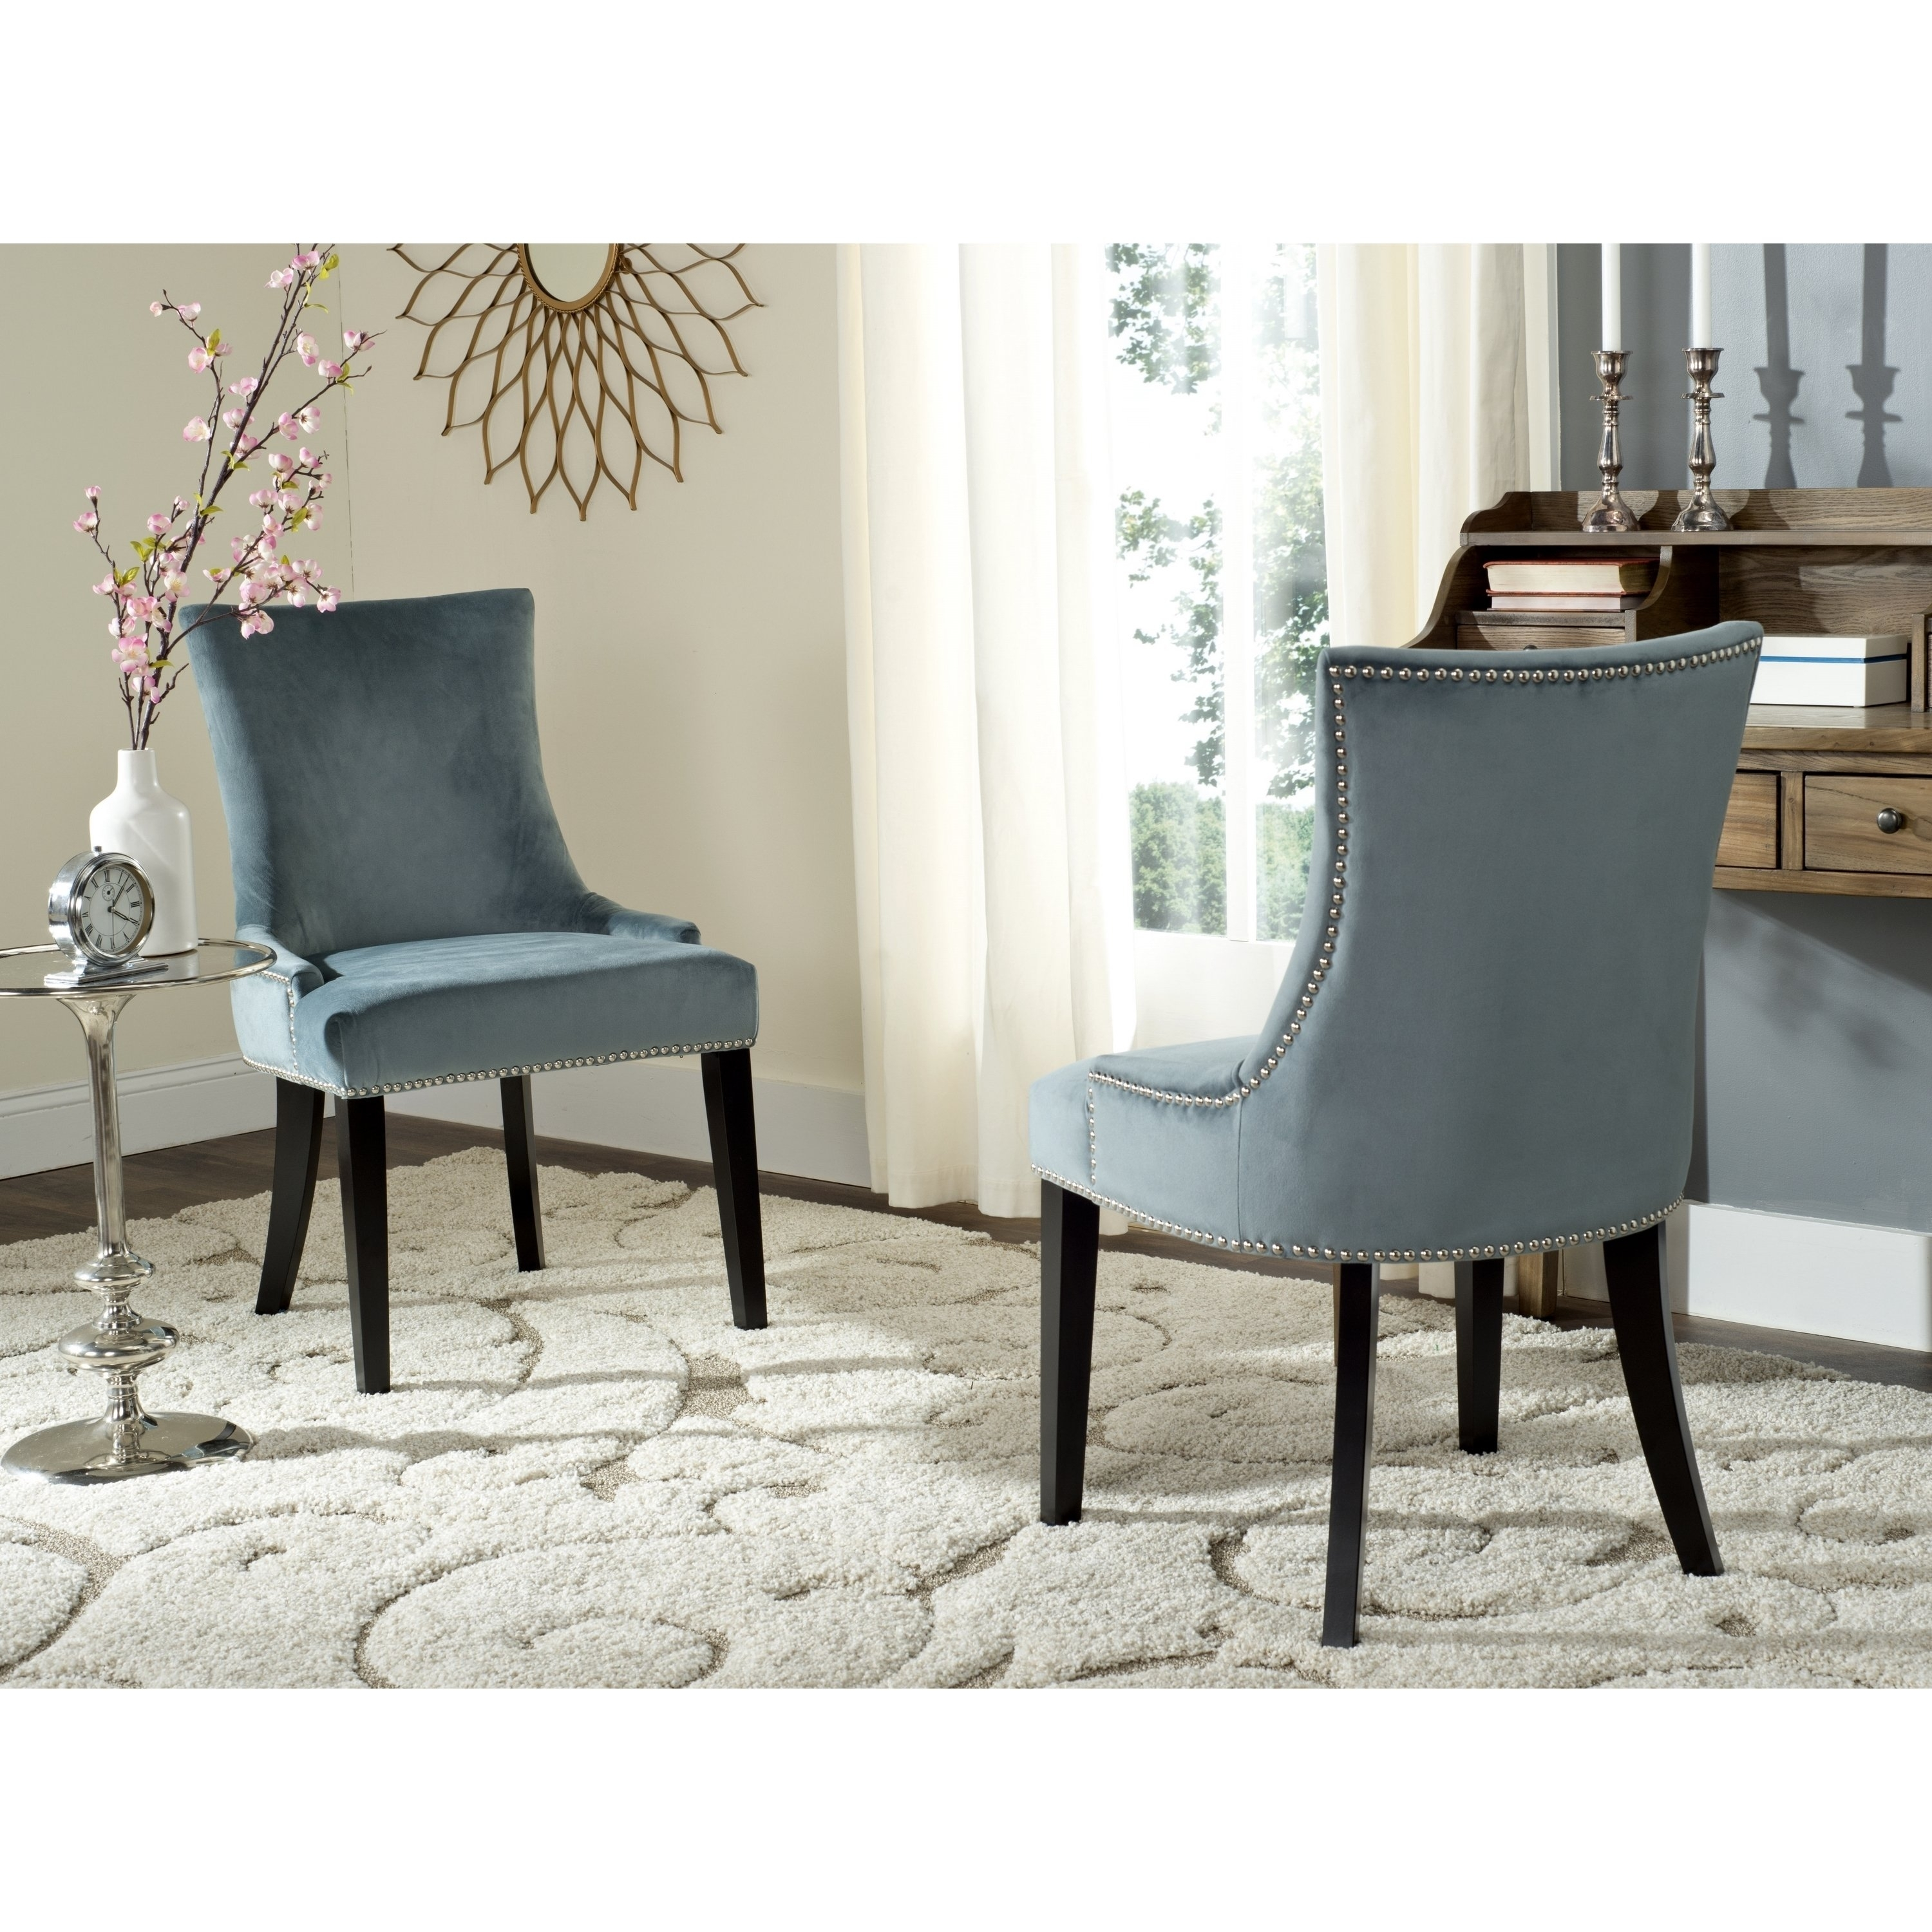 Buy Espresso Finish, Fabric Kitchen & Dining Room Chairs Online At Intended For Well Liked Garten Linen Skirted Side Chairs Set Of  (#2 of 20)